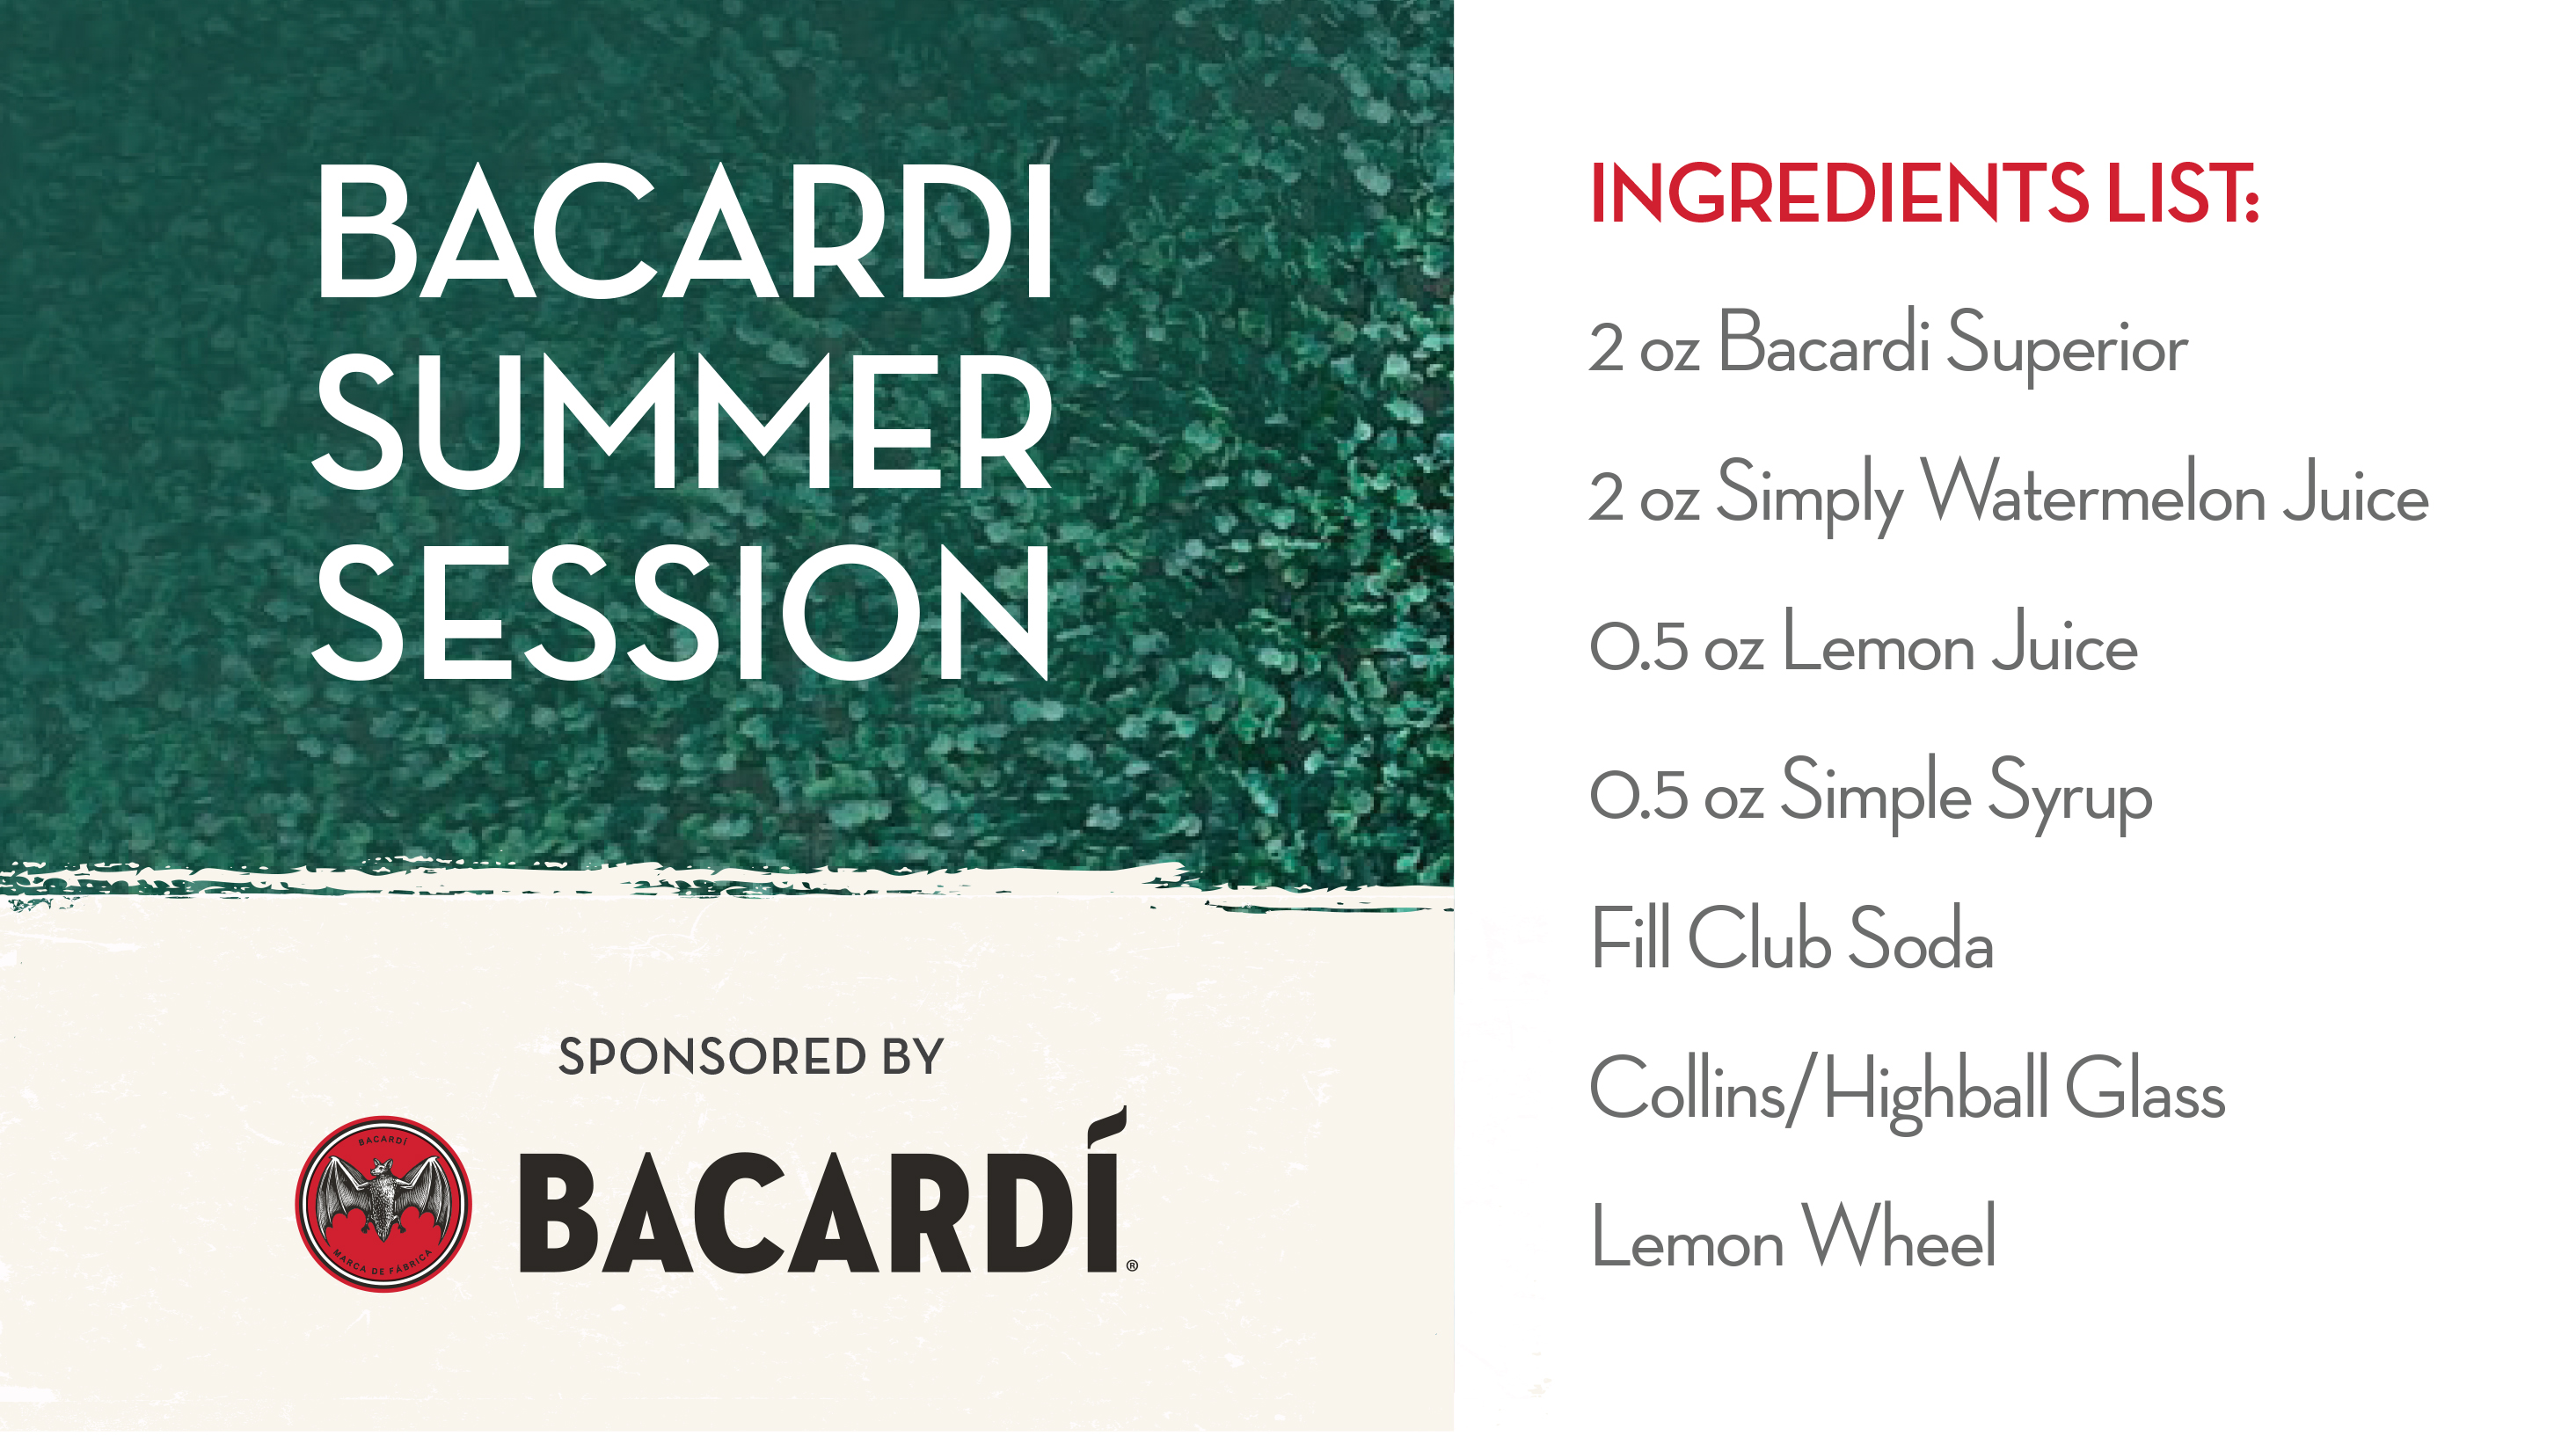 List of ingredients for Bacardi Summer Session cocktail